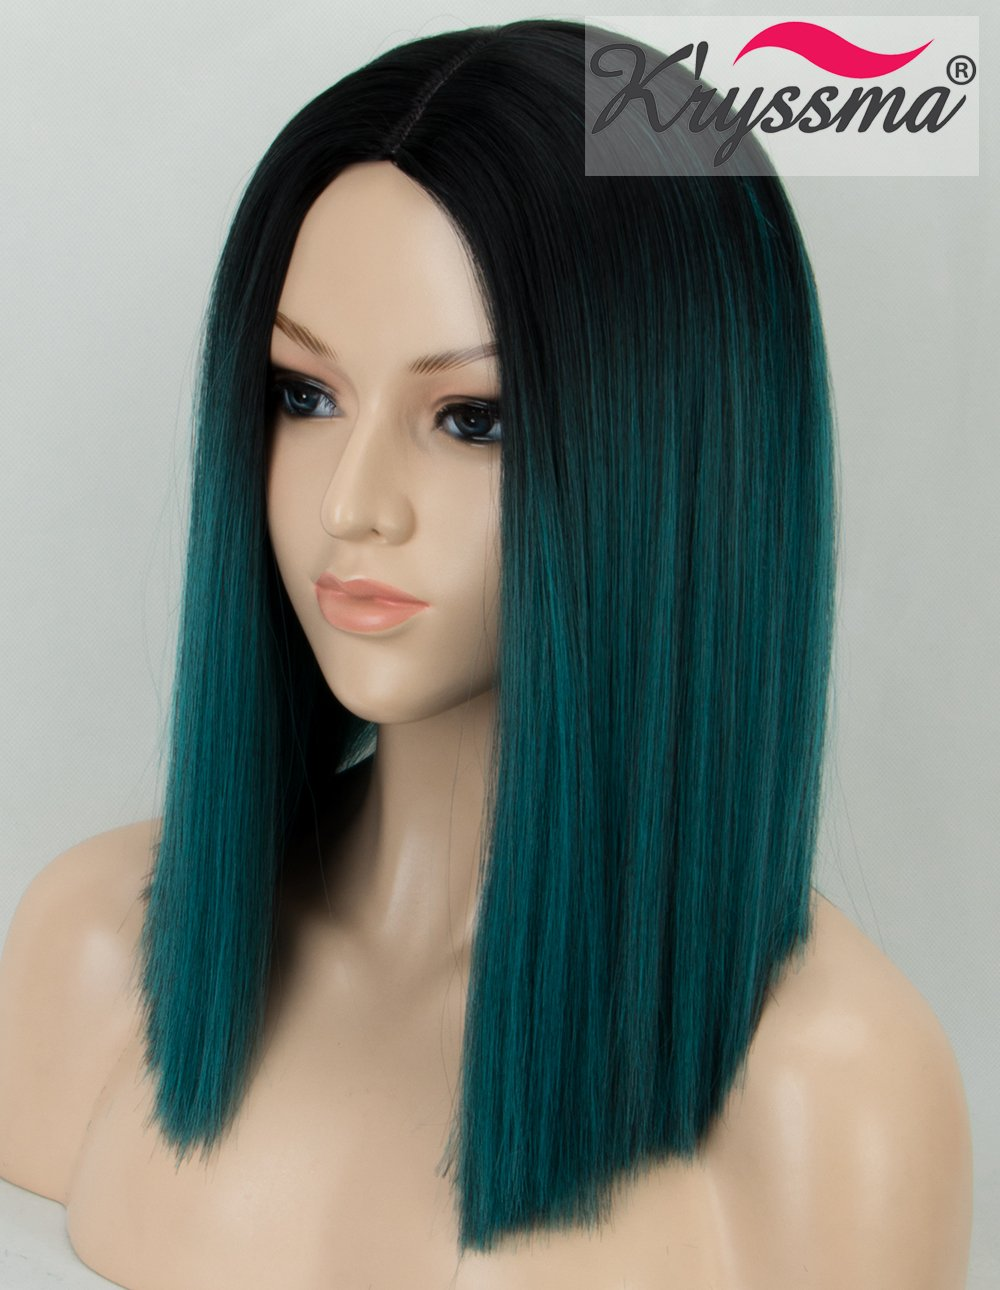 K'ryssma KÀryssma Ombre Green Synthetic Wig with Black Roots Short Bob Wig with Middle Parting Dark Green Heat Resistant Hair Wig for Women Full Machine Made